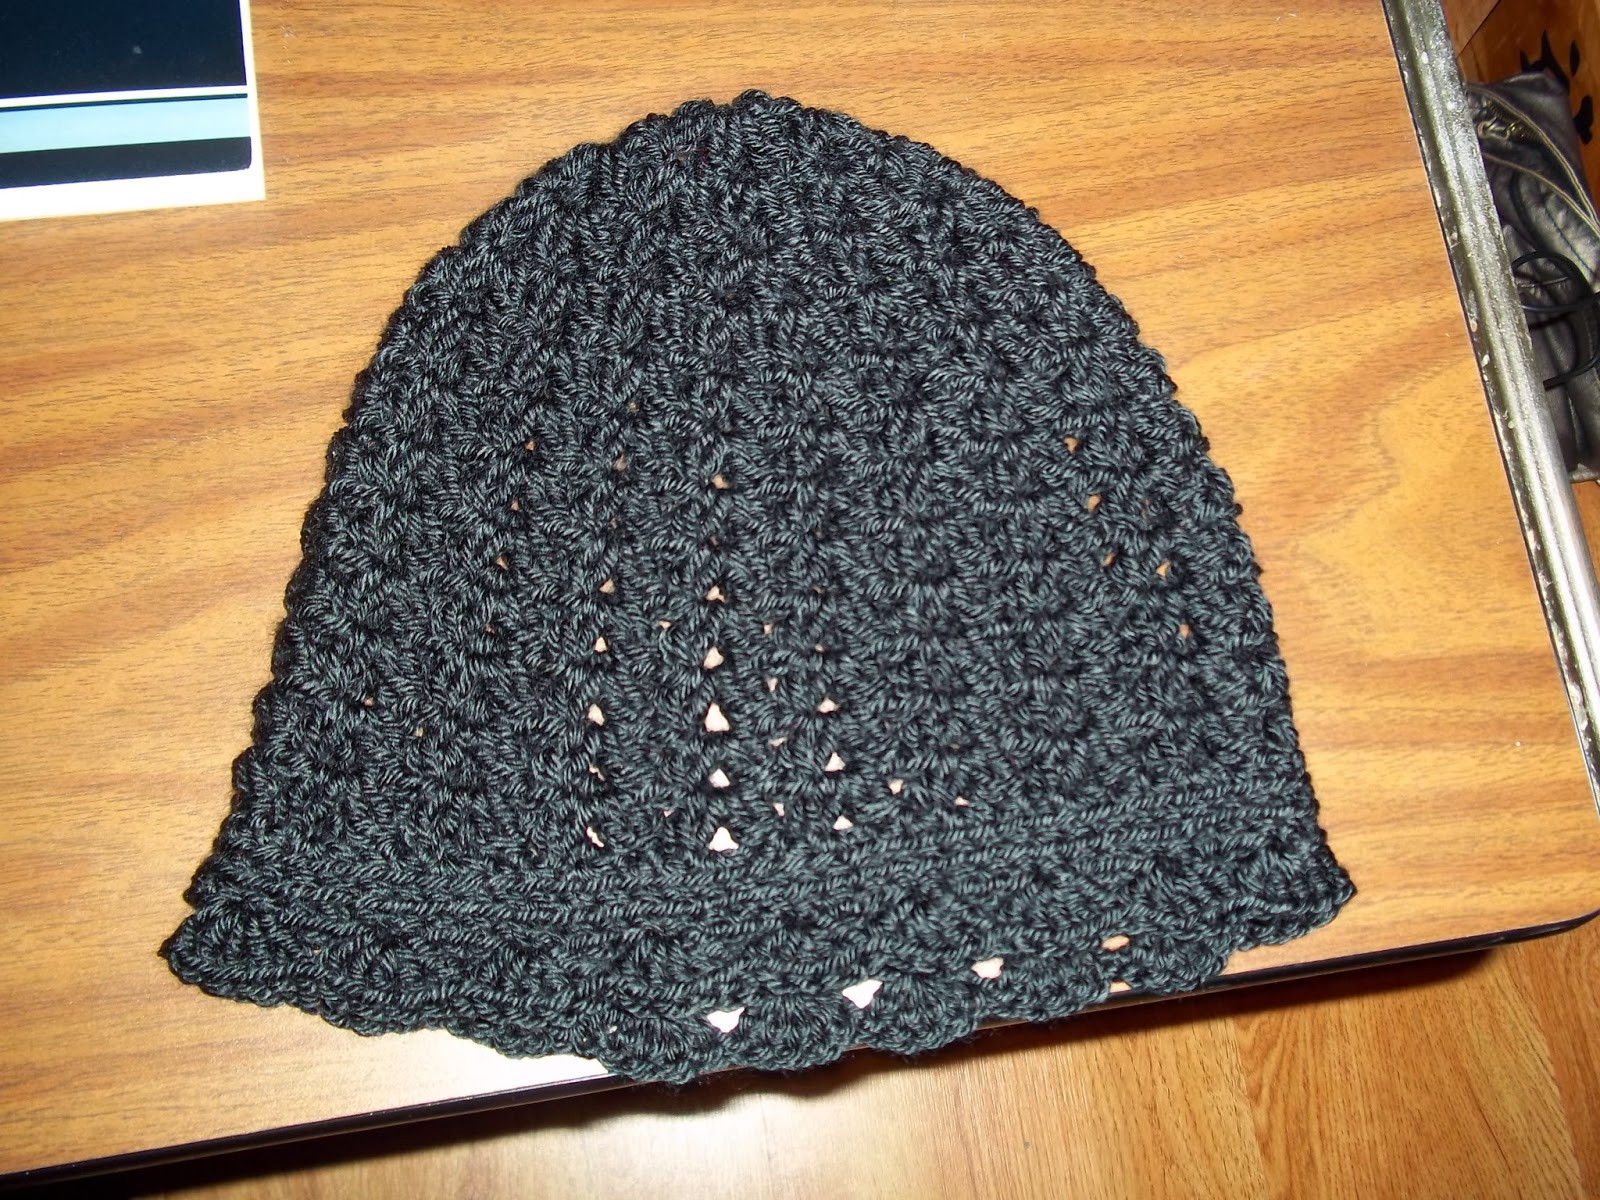 ... only a dream away: Crochet cluster v stitch hat and crochet Iron Man